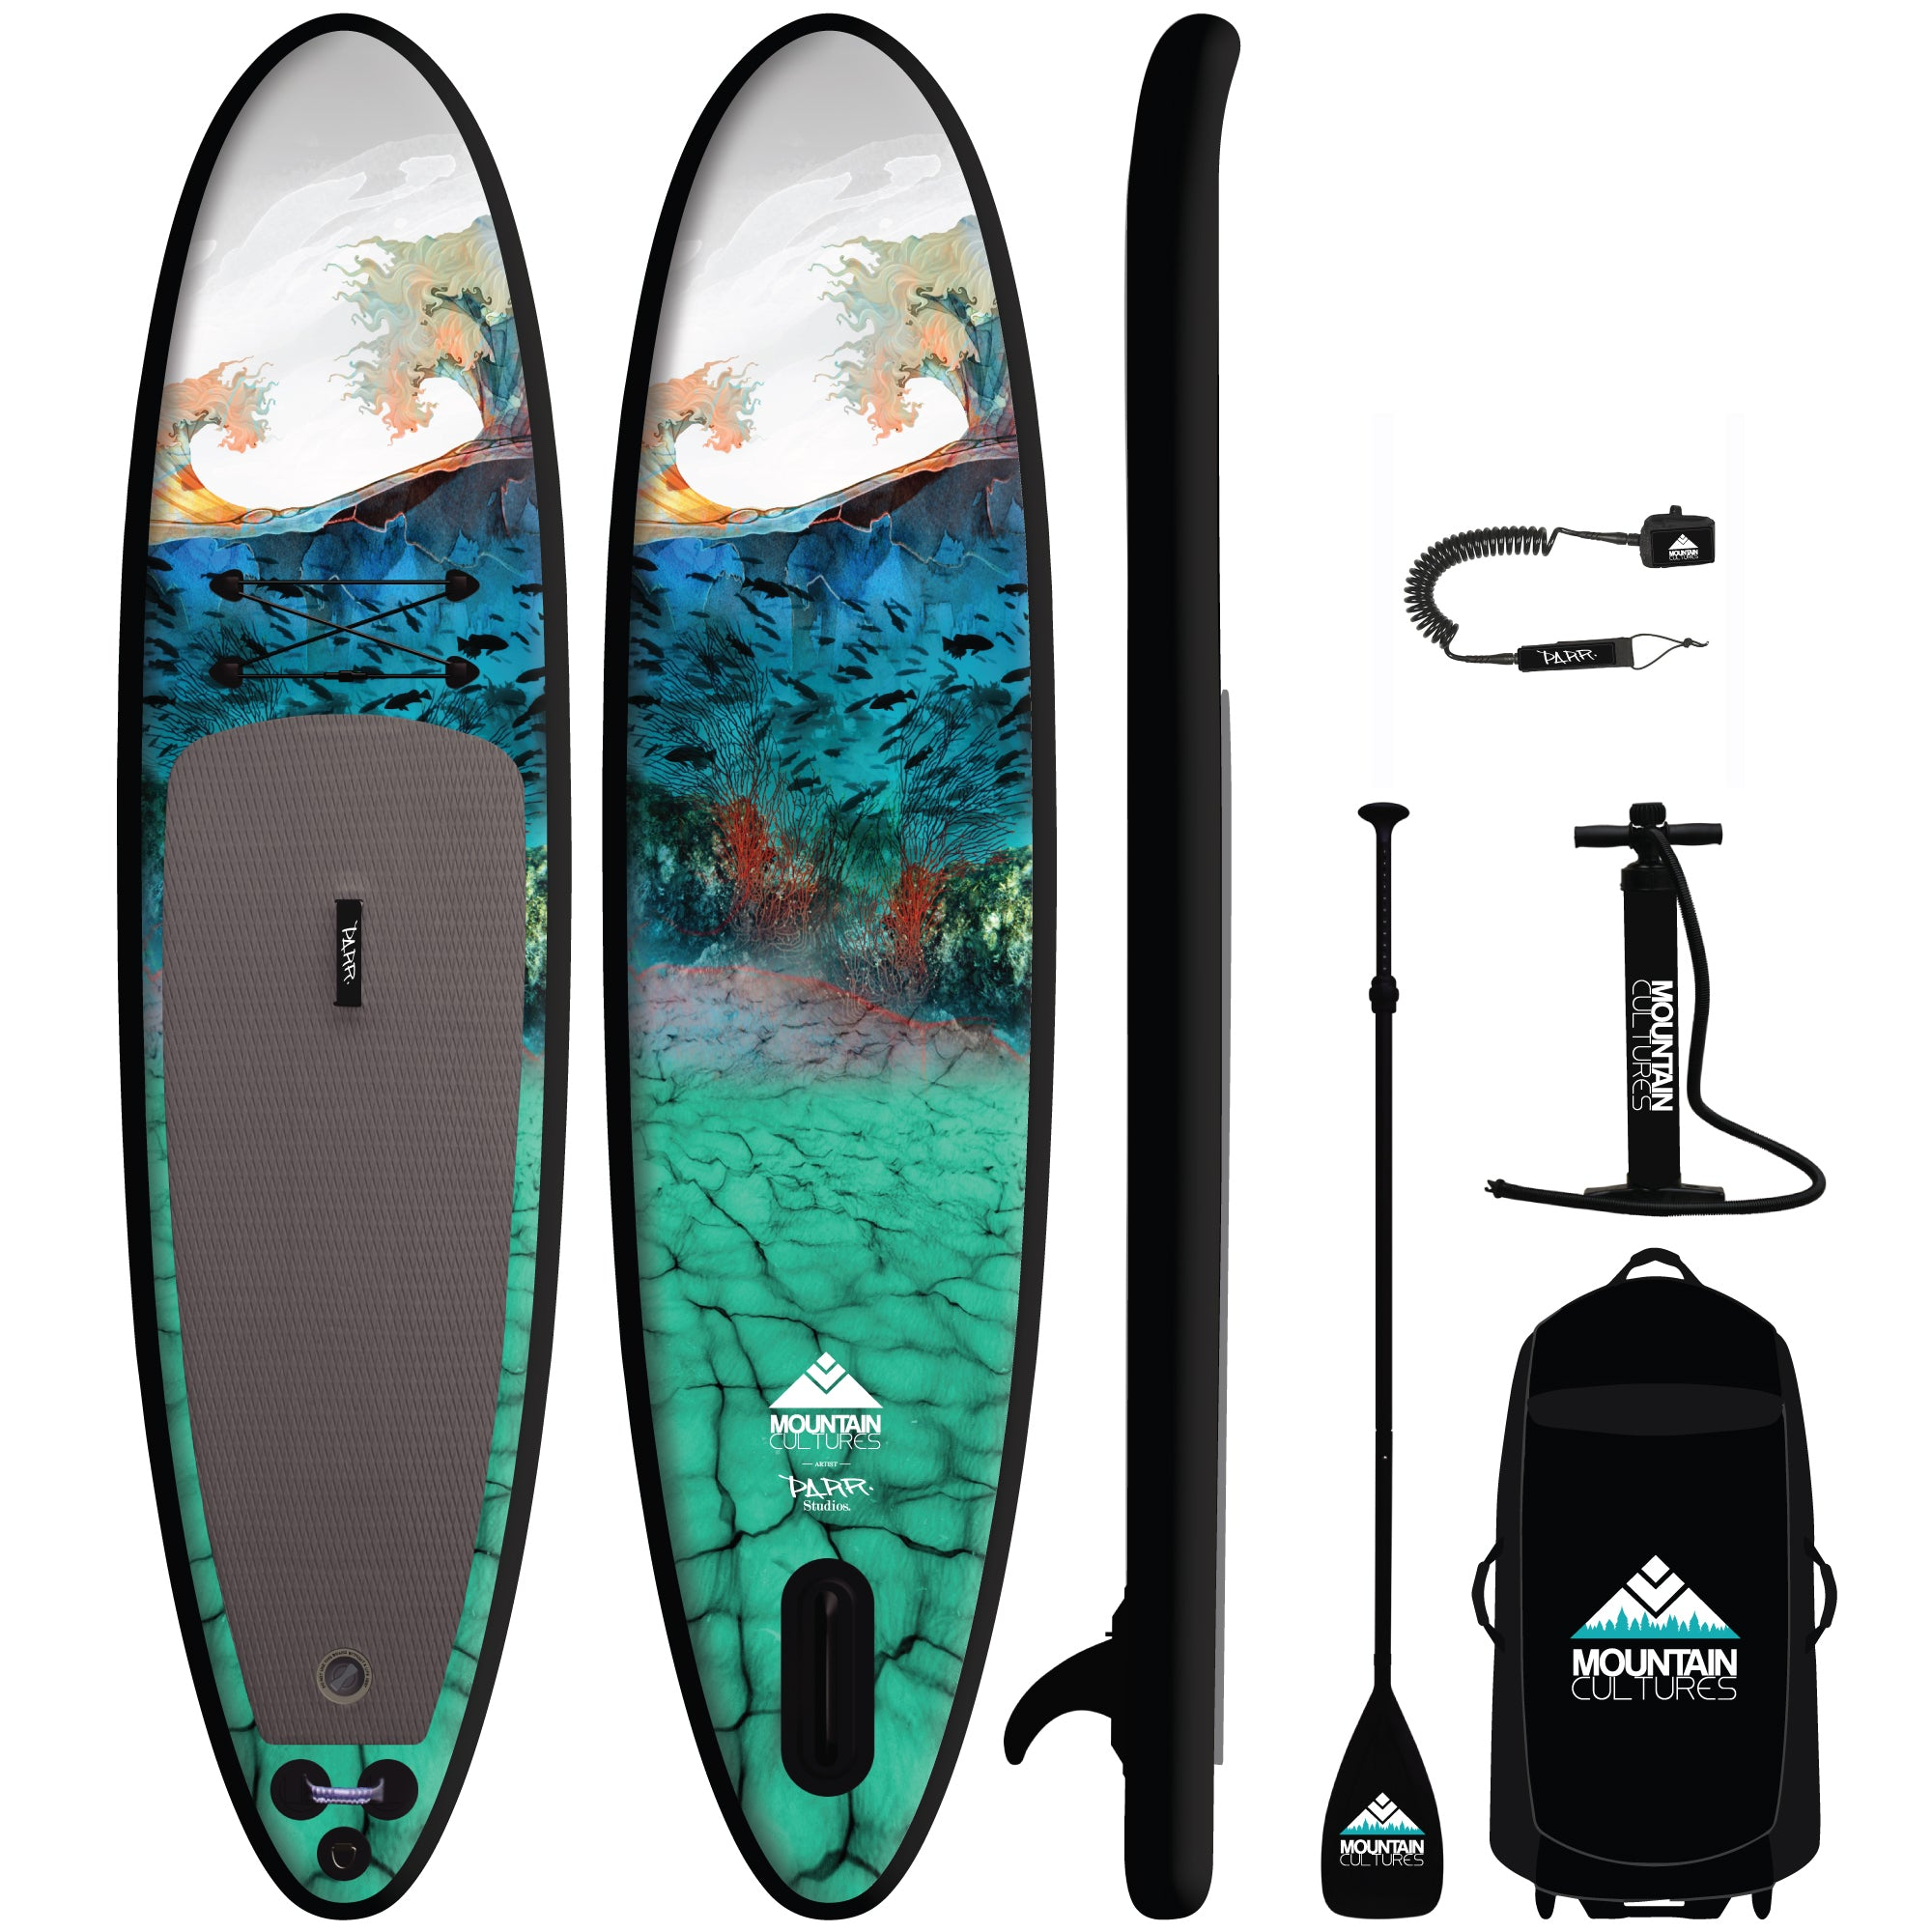 2021 MC/PARR Inflatable 11.0  Paddle Board Package - BLACK RAIL